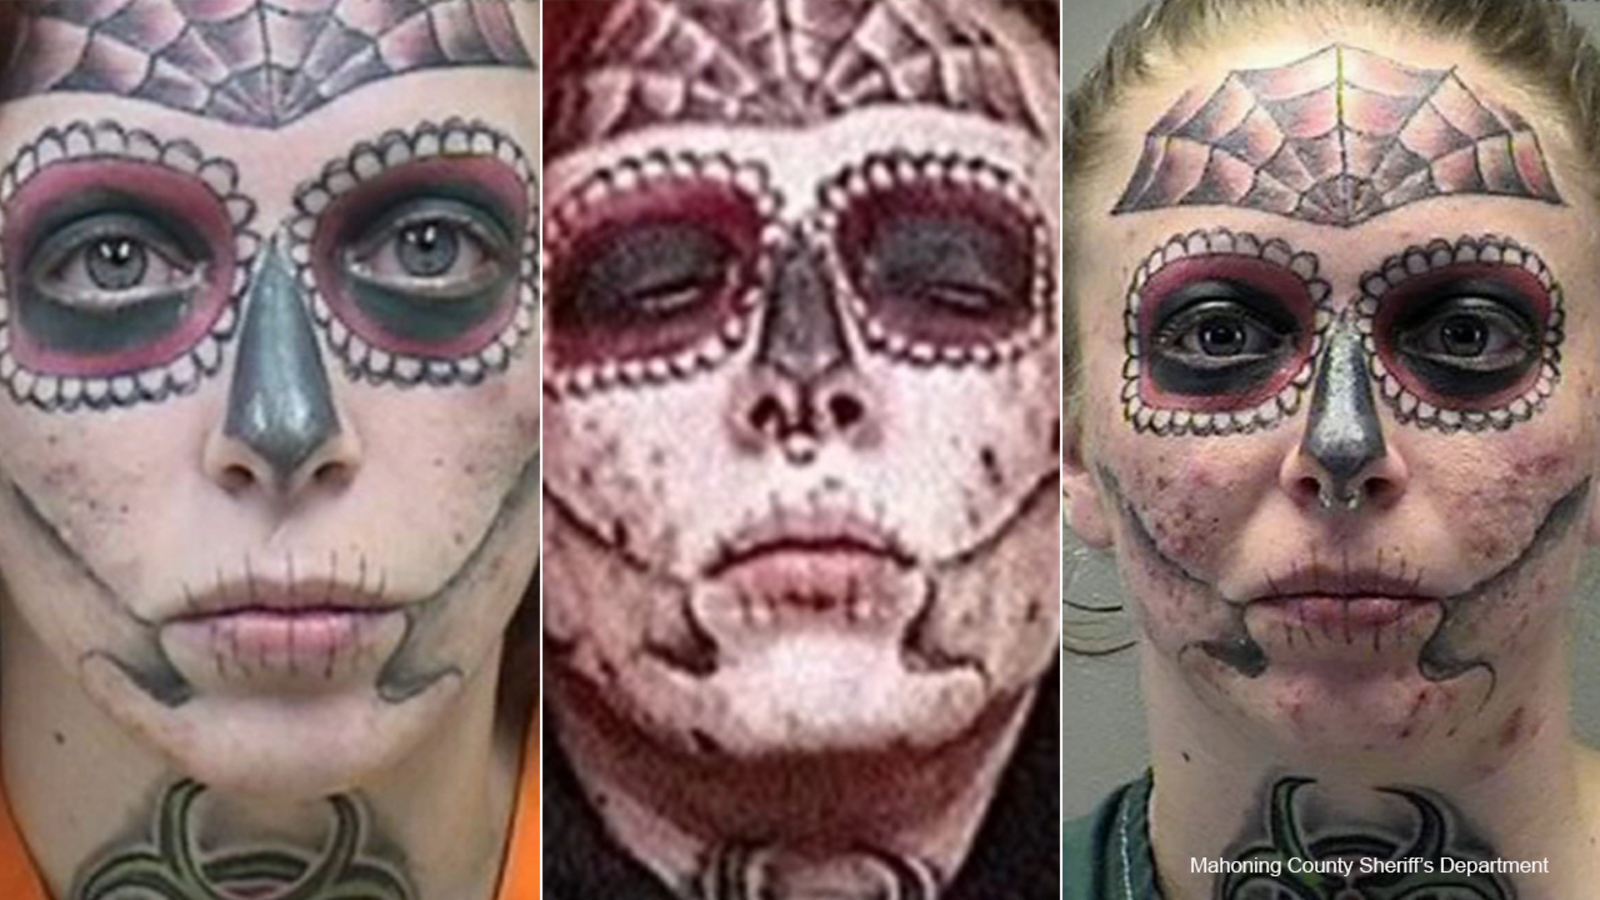 Ohio woman with distinctive tattoos arrested for 3rd time in 6 months